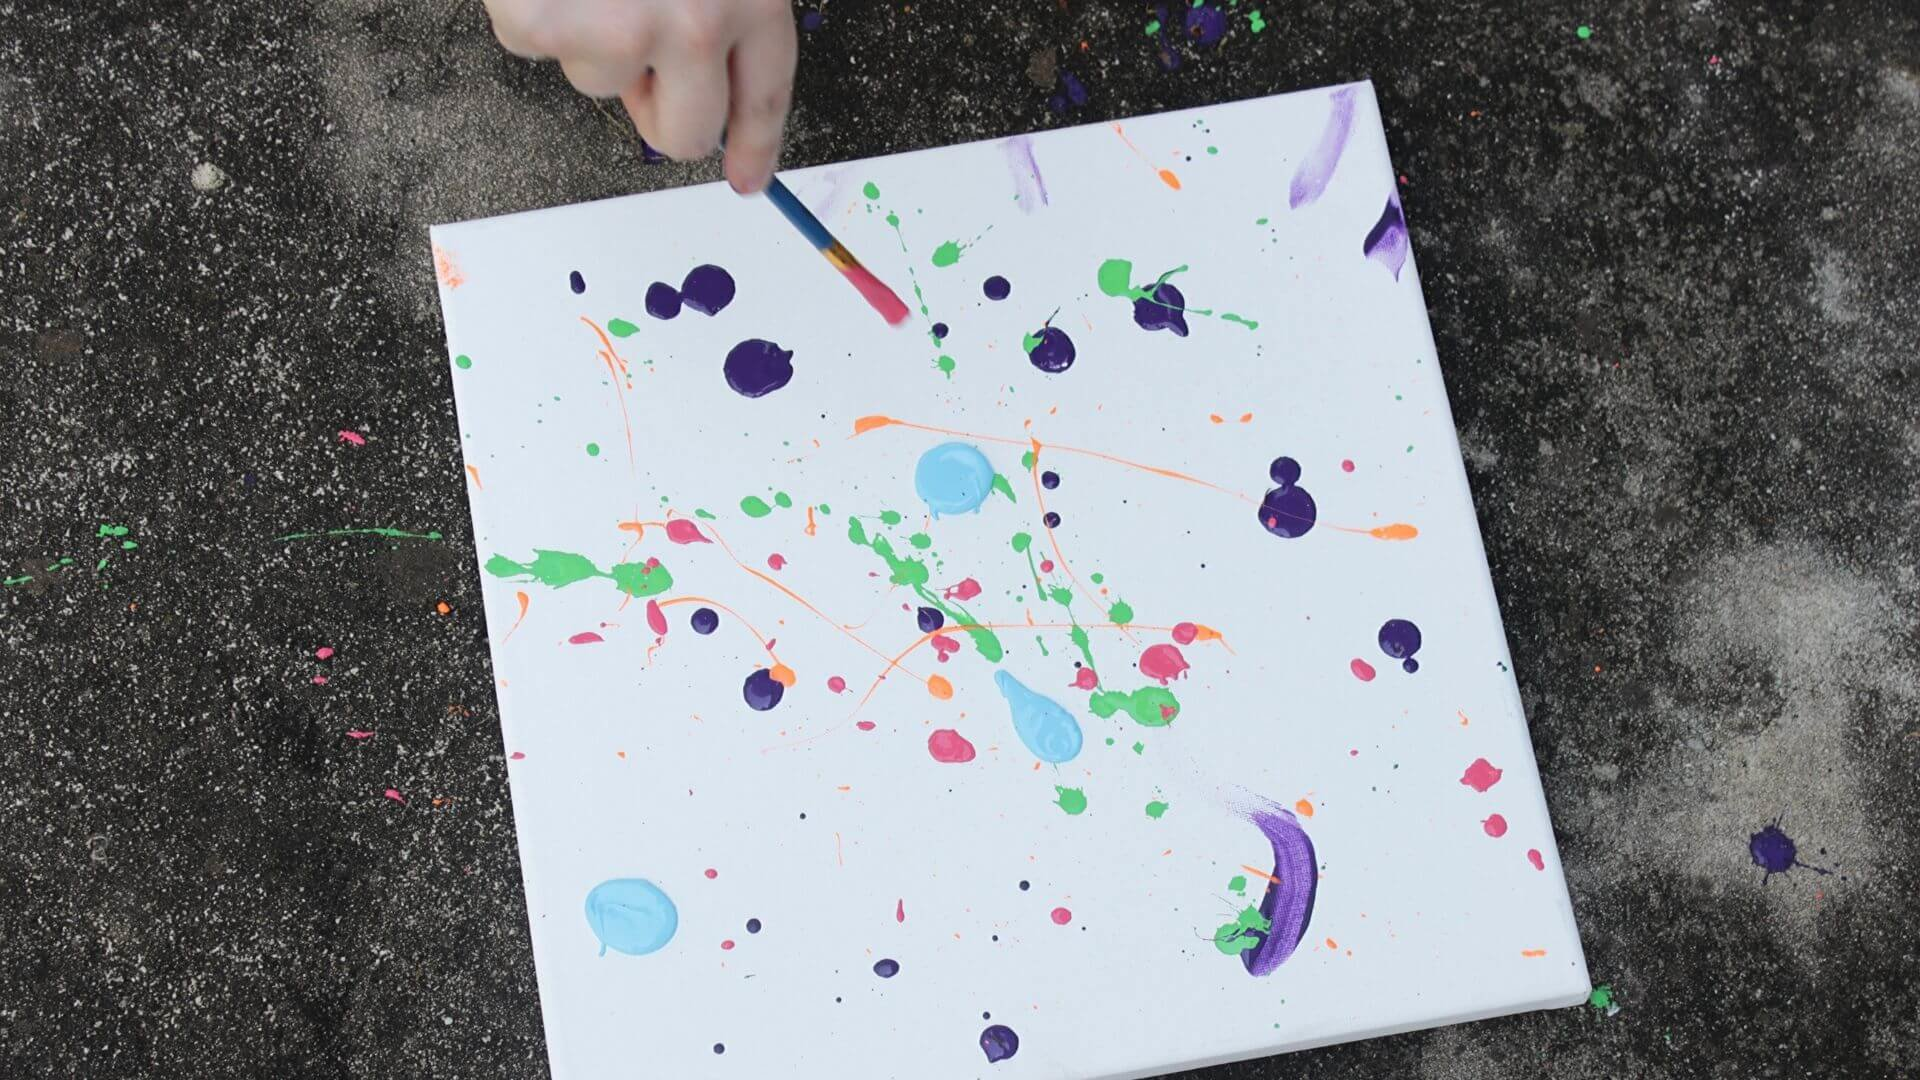 Forensic science painting being done outside